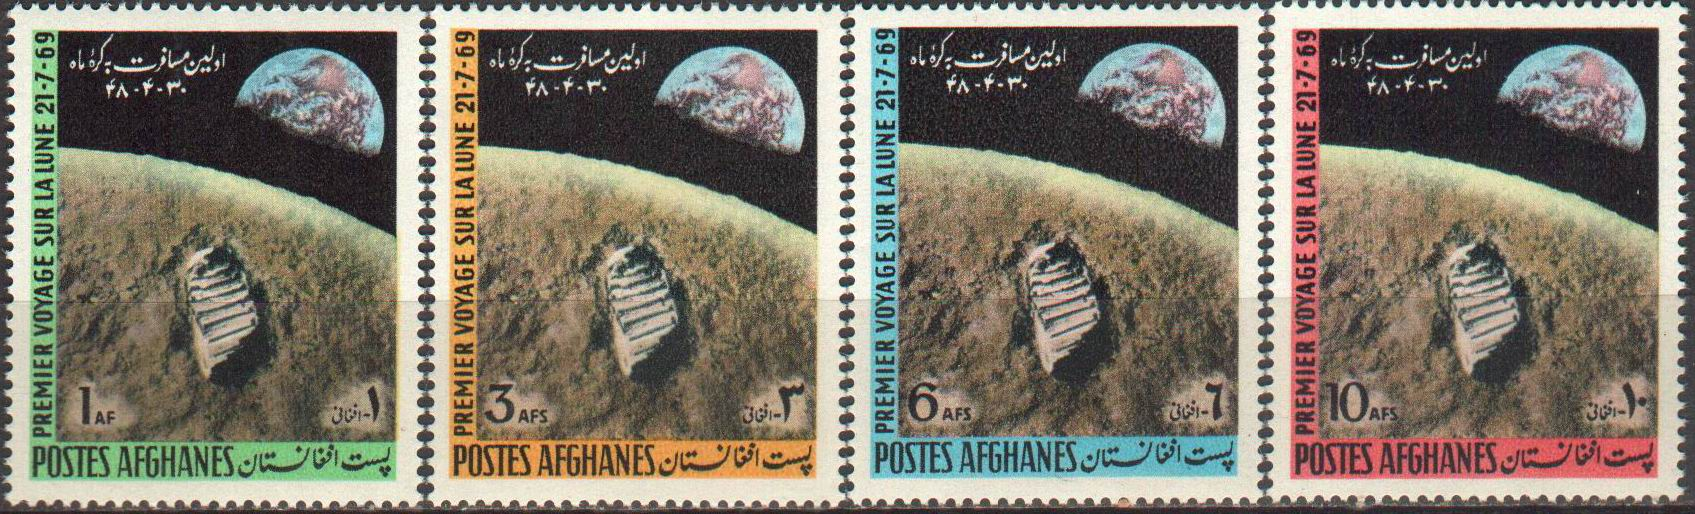 Afghanistan 1969 Stamps Man First Footprints On Moon Earth Space